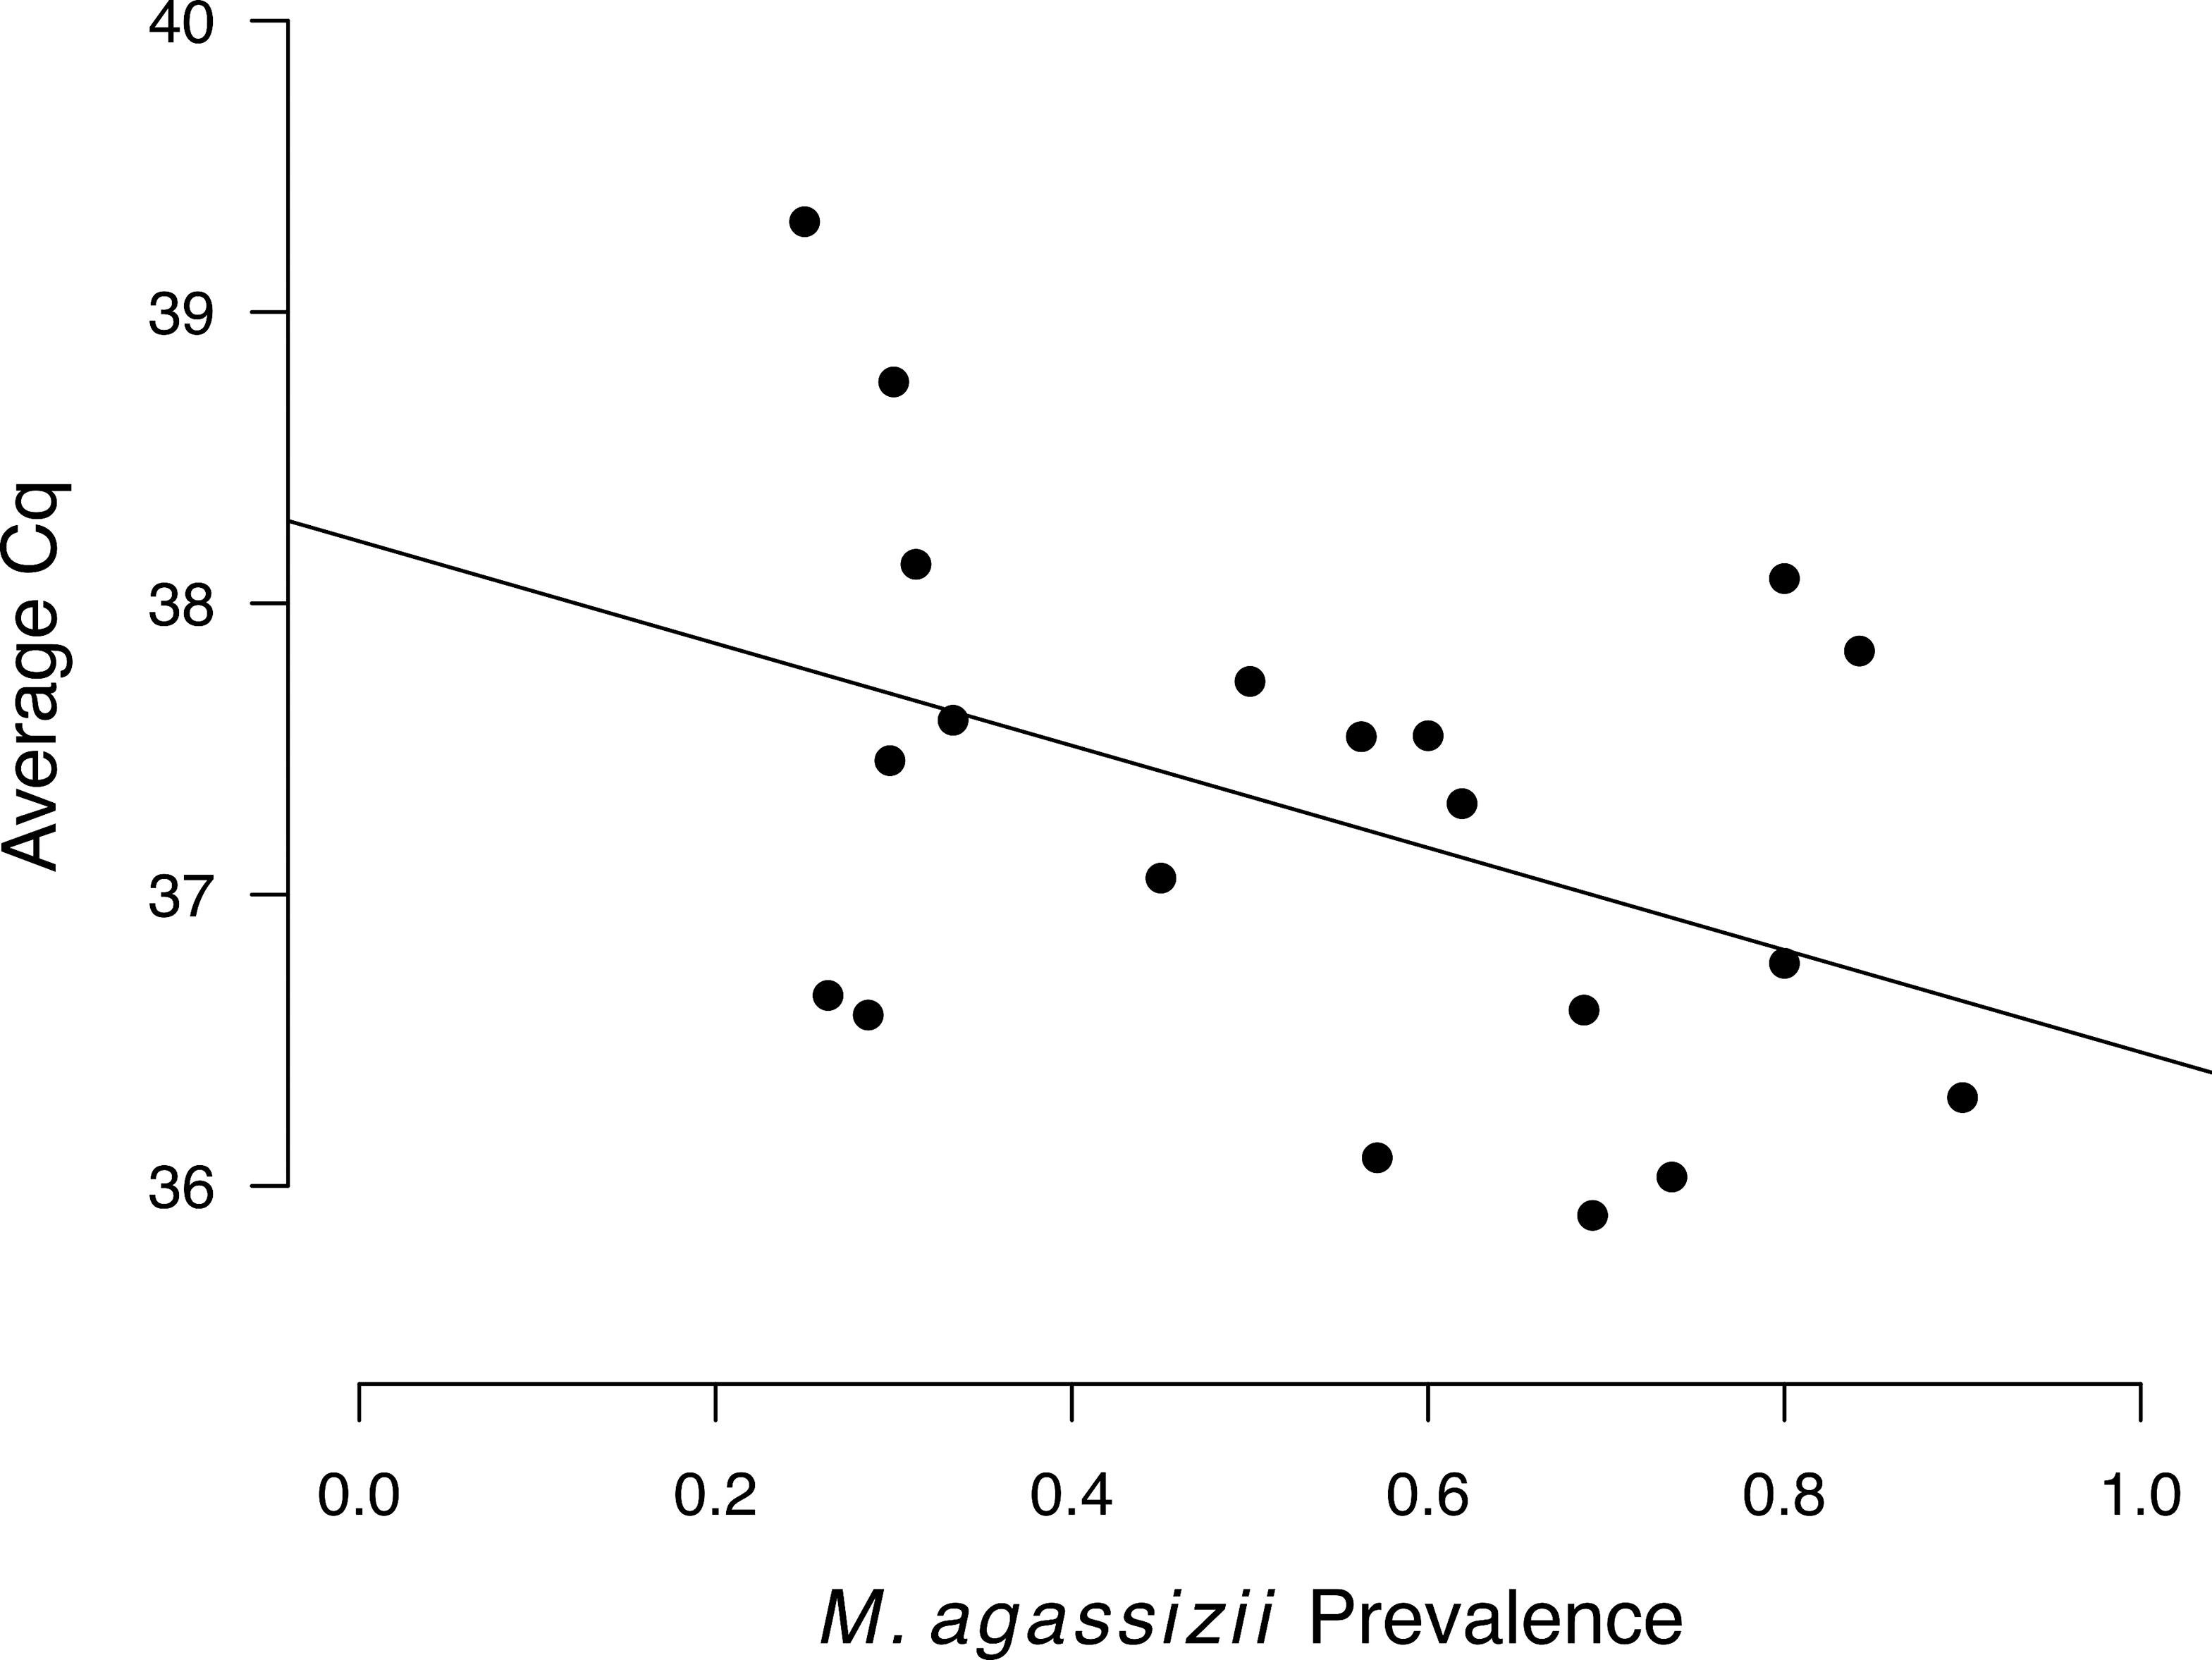 Prevalence and Diversity of the Upper Respiratory Pathogen